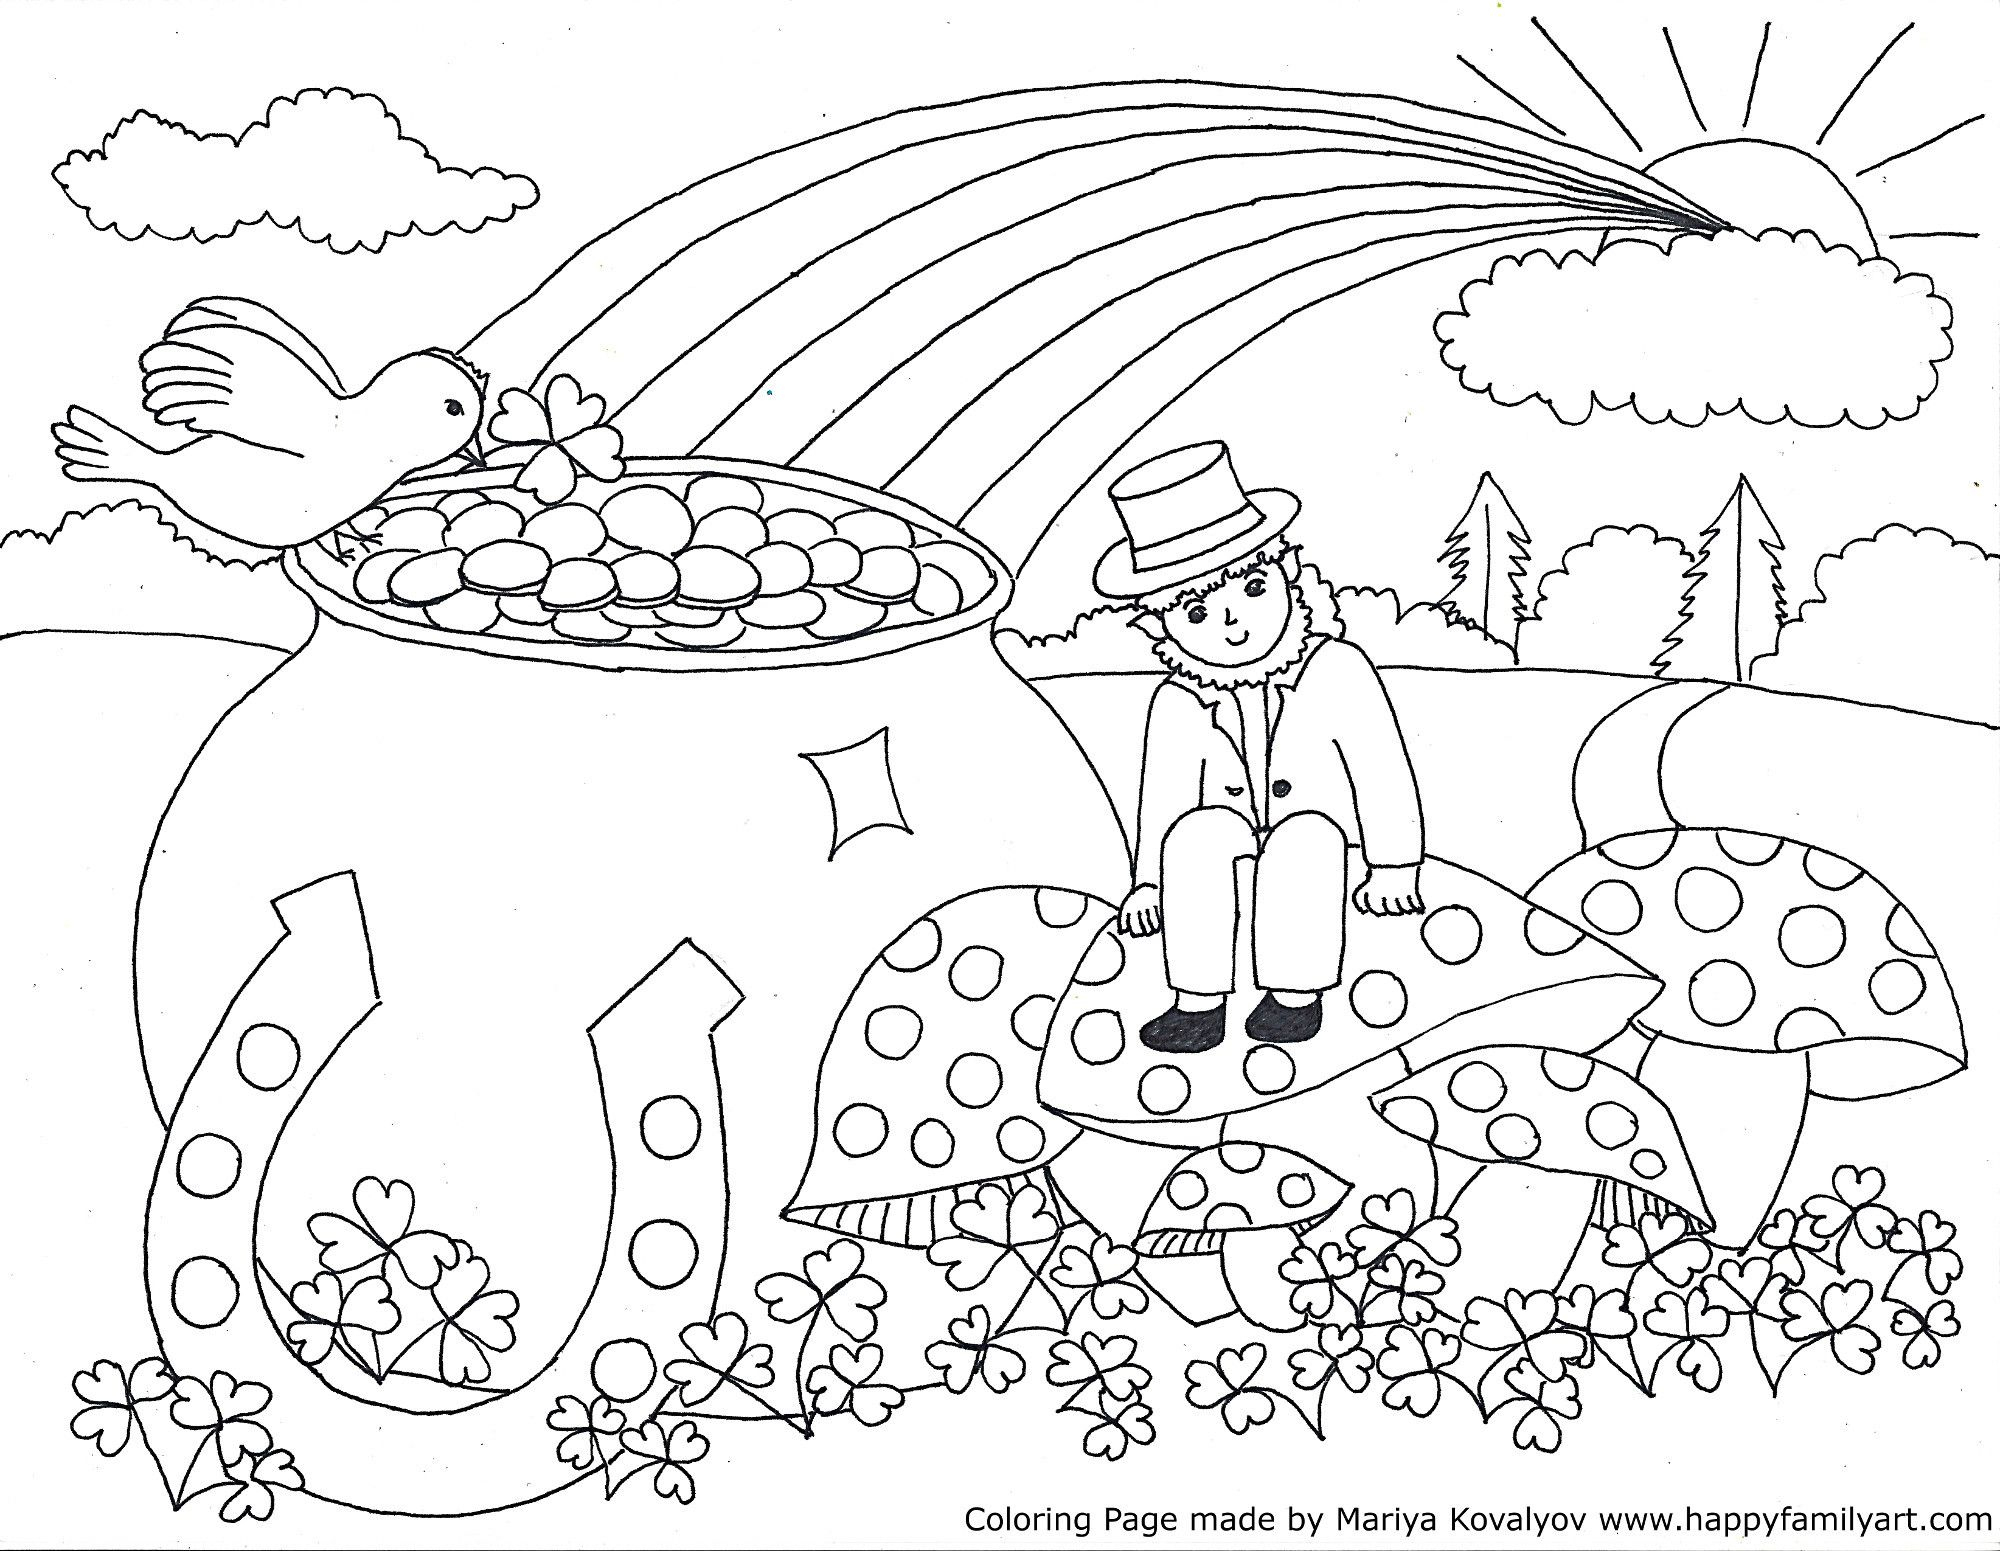 Coloring Pages : Coloring Pagesree Sheetsor Kindergarten St Patricks - Free Printable Saint Patrick Coloring Pages